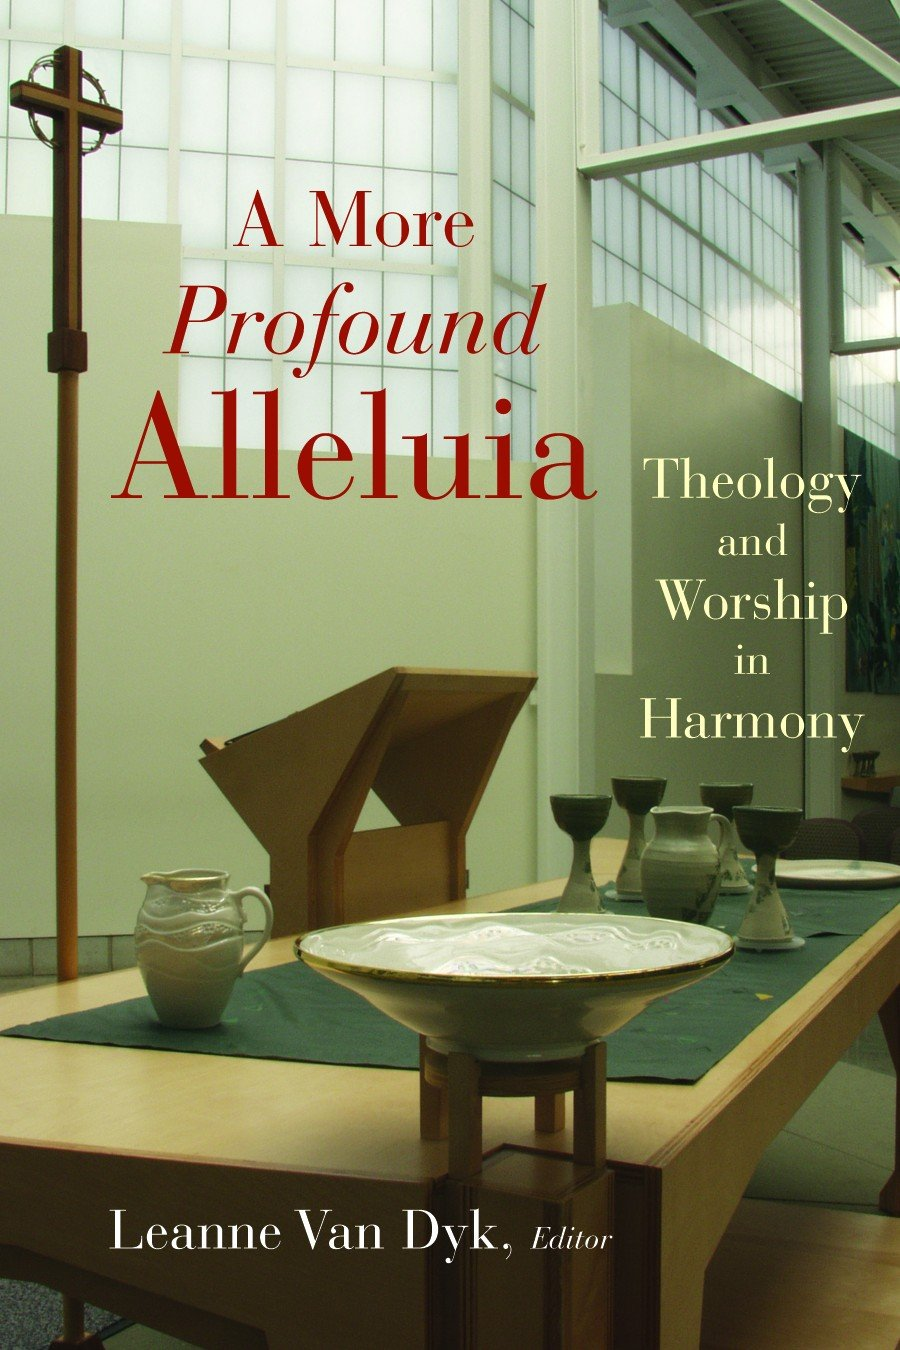 Cover of A More Profound Alleluia